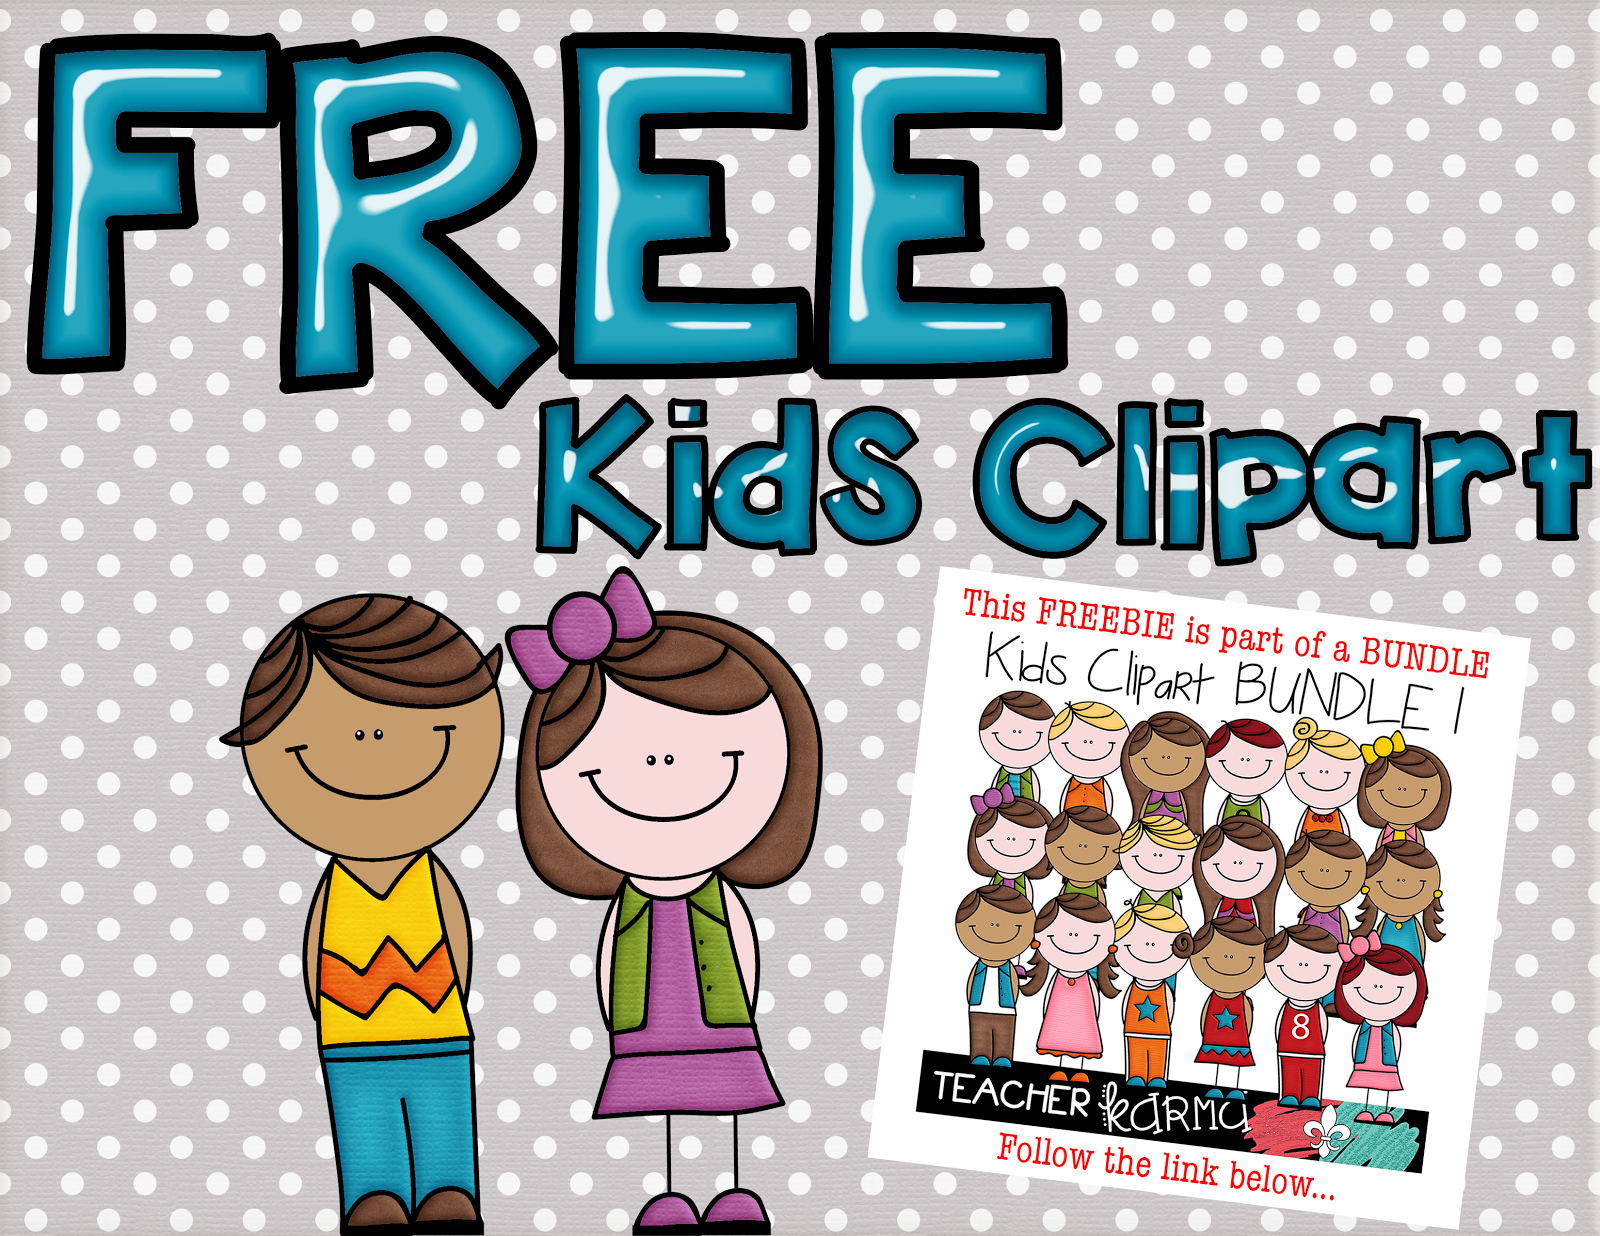 2 FREE Kids Student Clipart Student clipart, Free